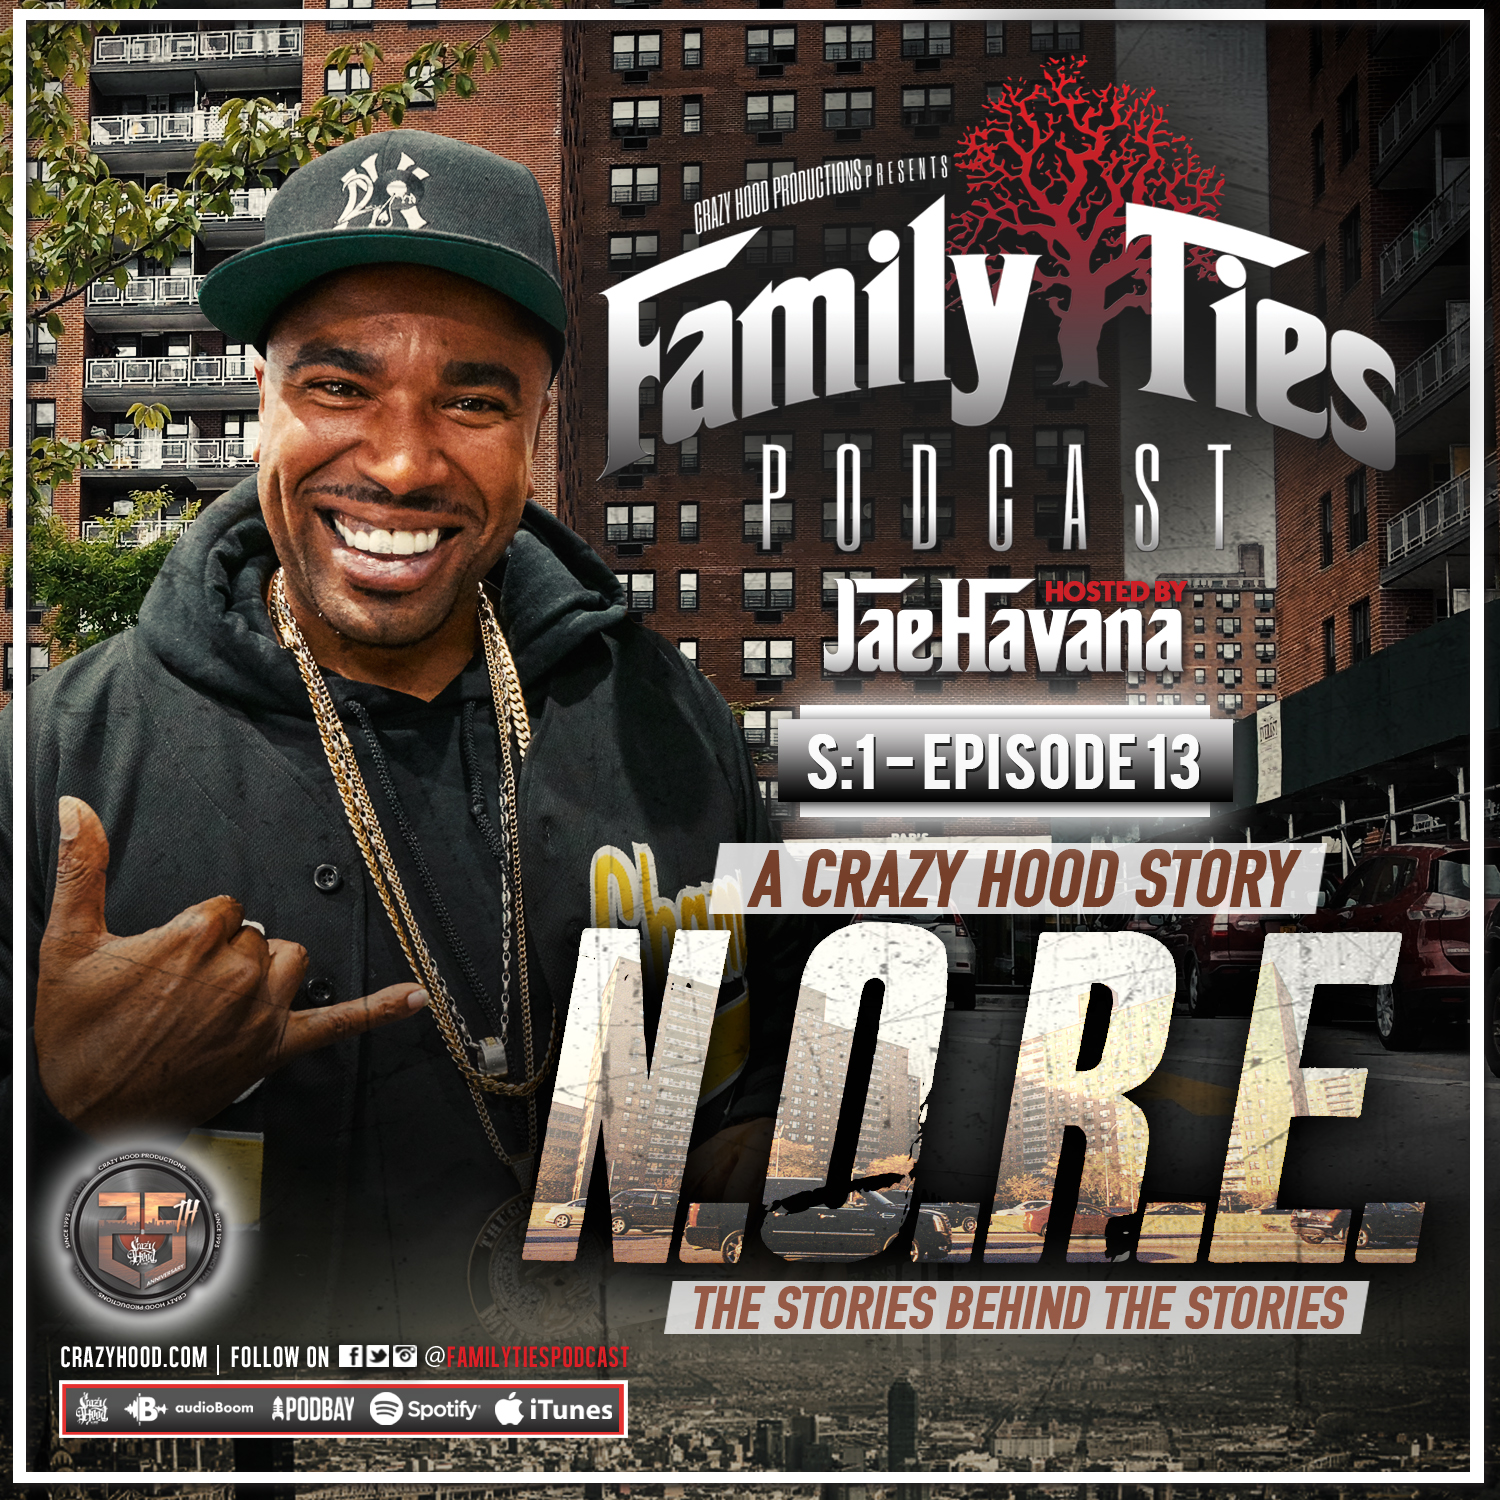 FAMILY TIES PODCAST S1: EPISODE 13 W/ N O R E | Drink Champs